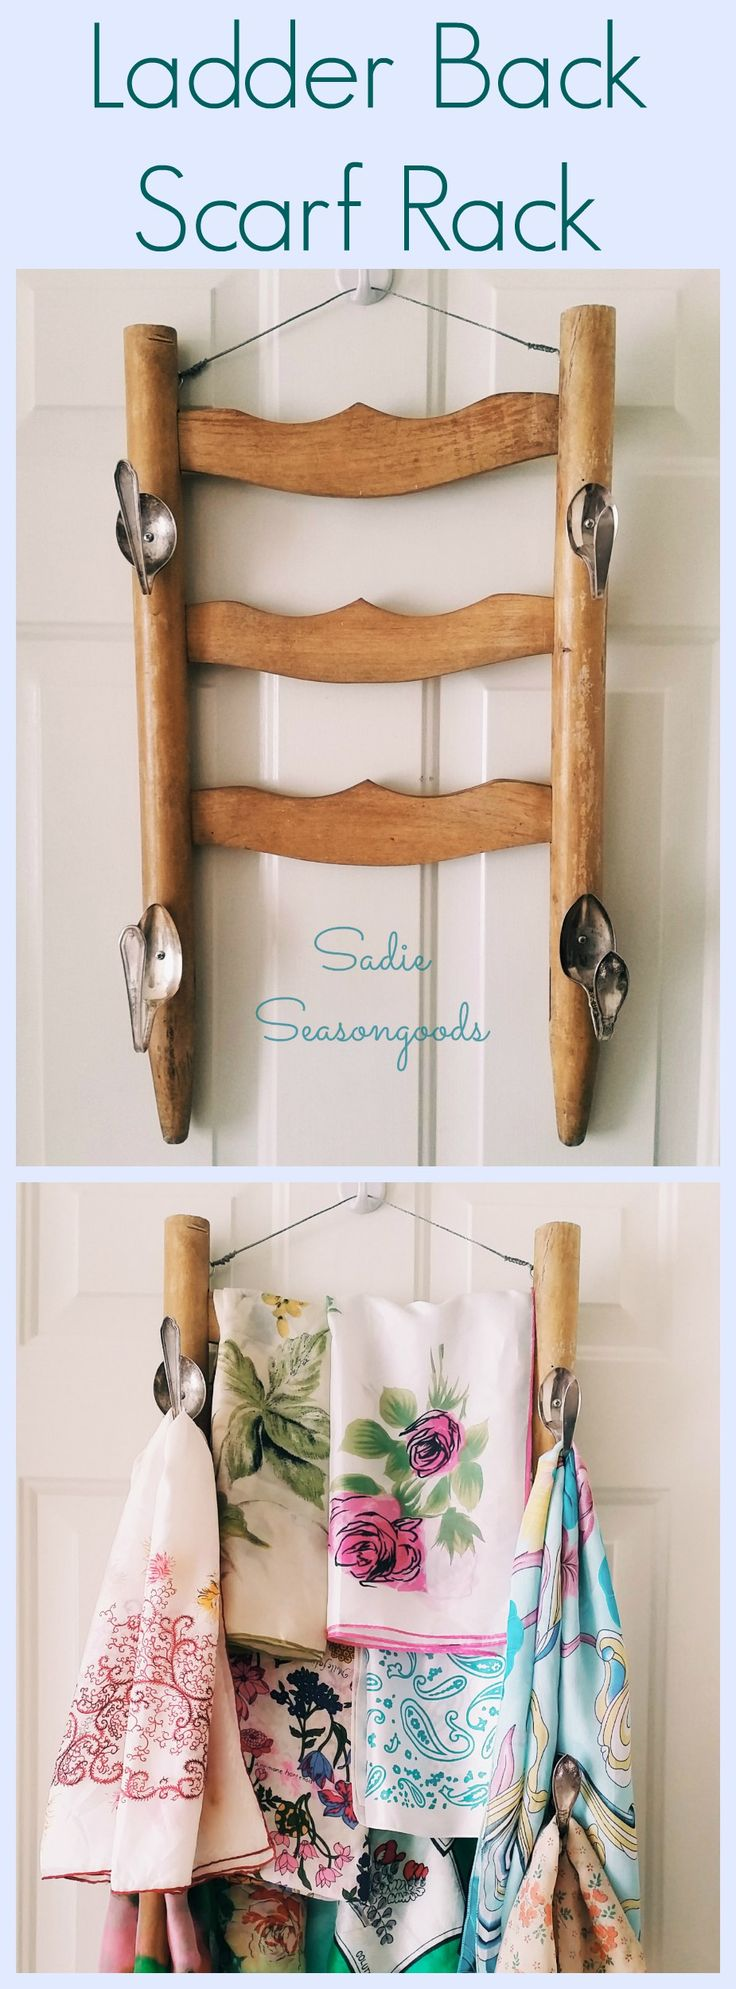 Bekvm Spice Rack Best 20 Scarf Rack Ideas On Pinterest Tie Hanger Ideas Storing